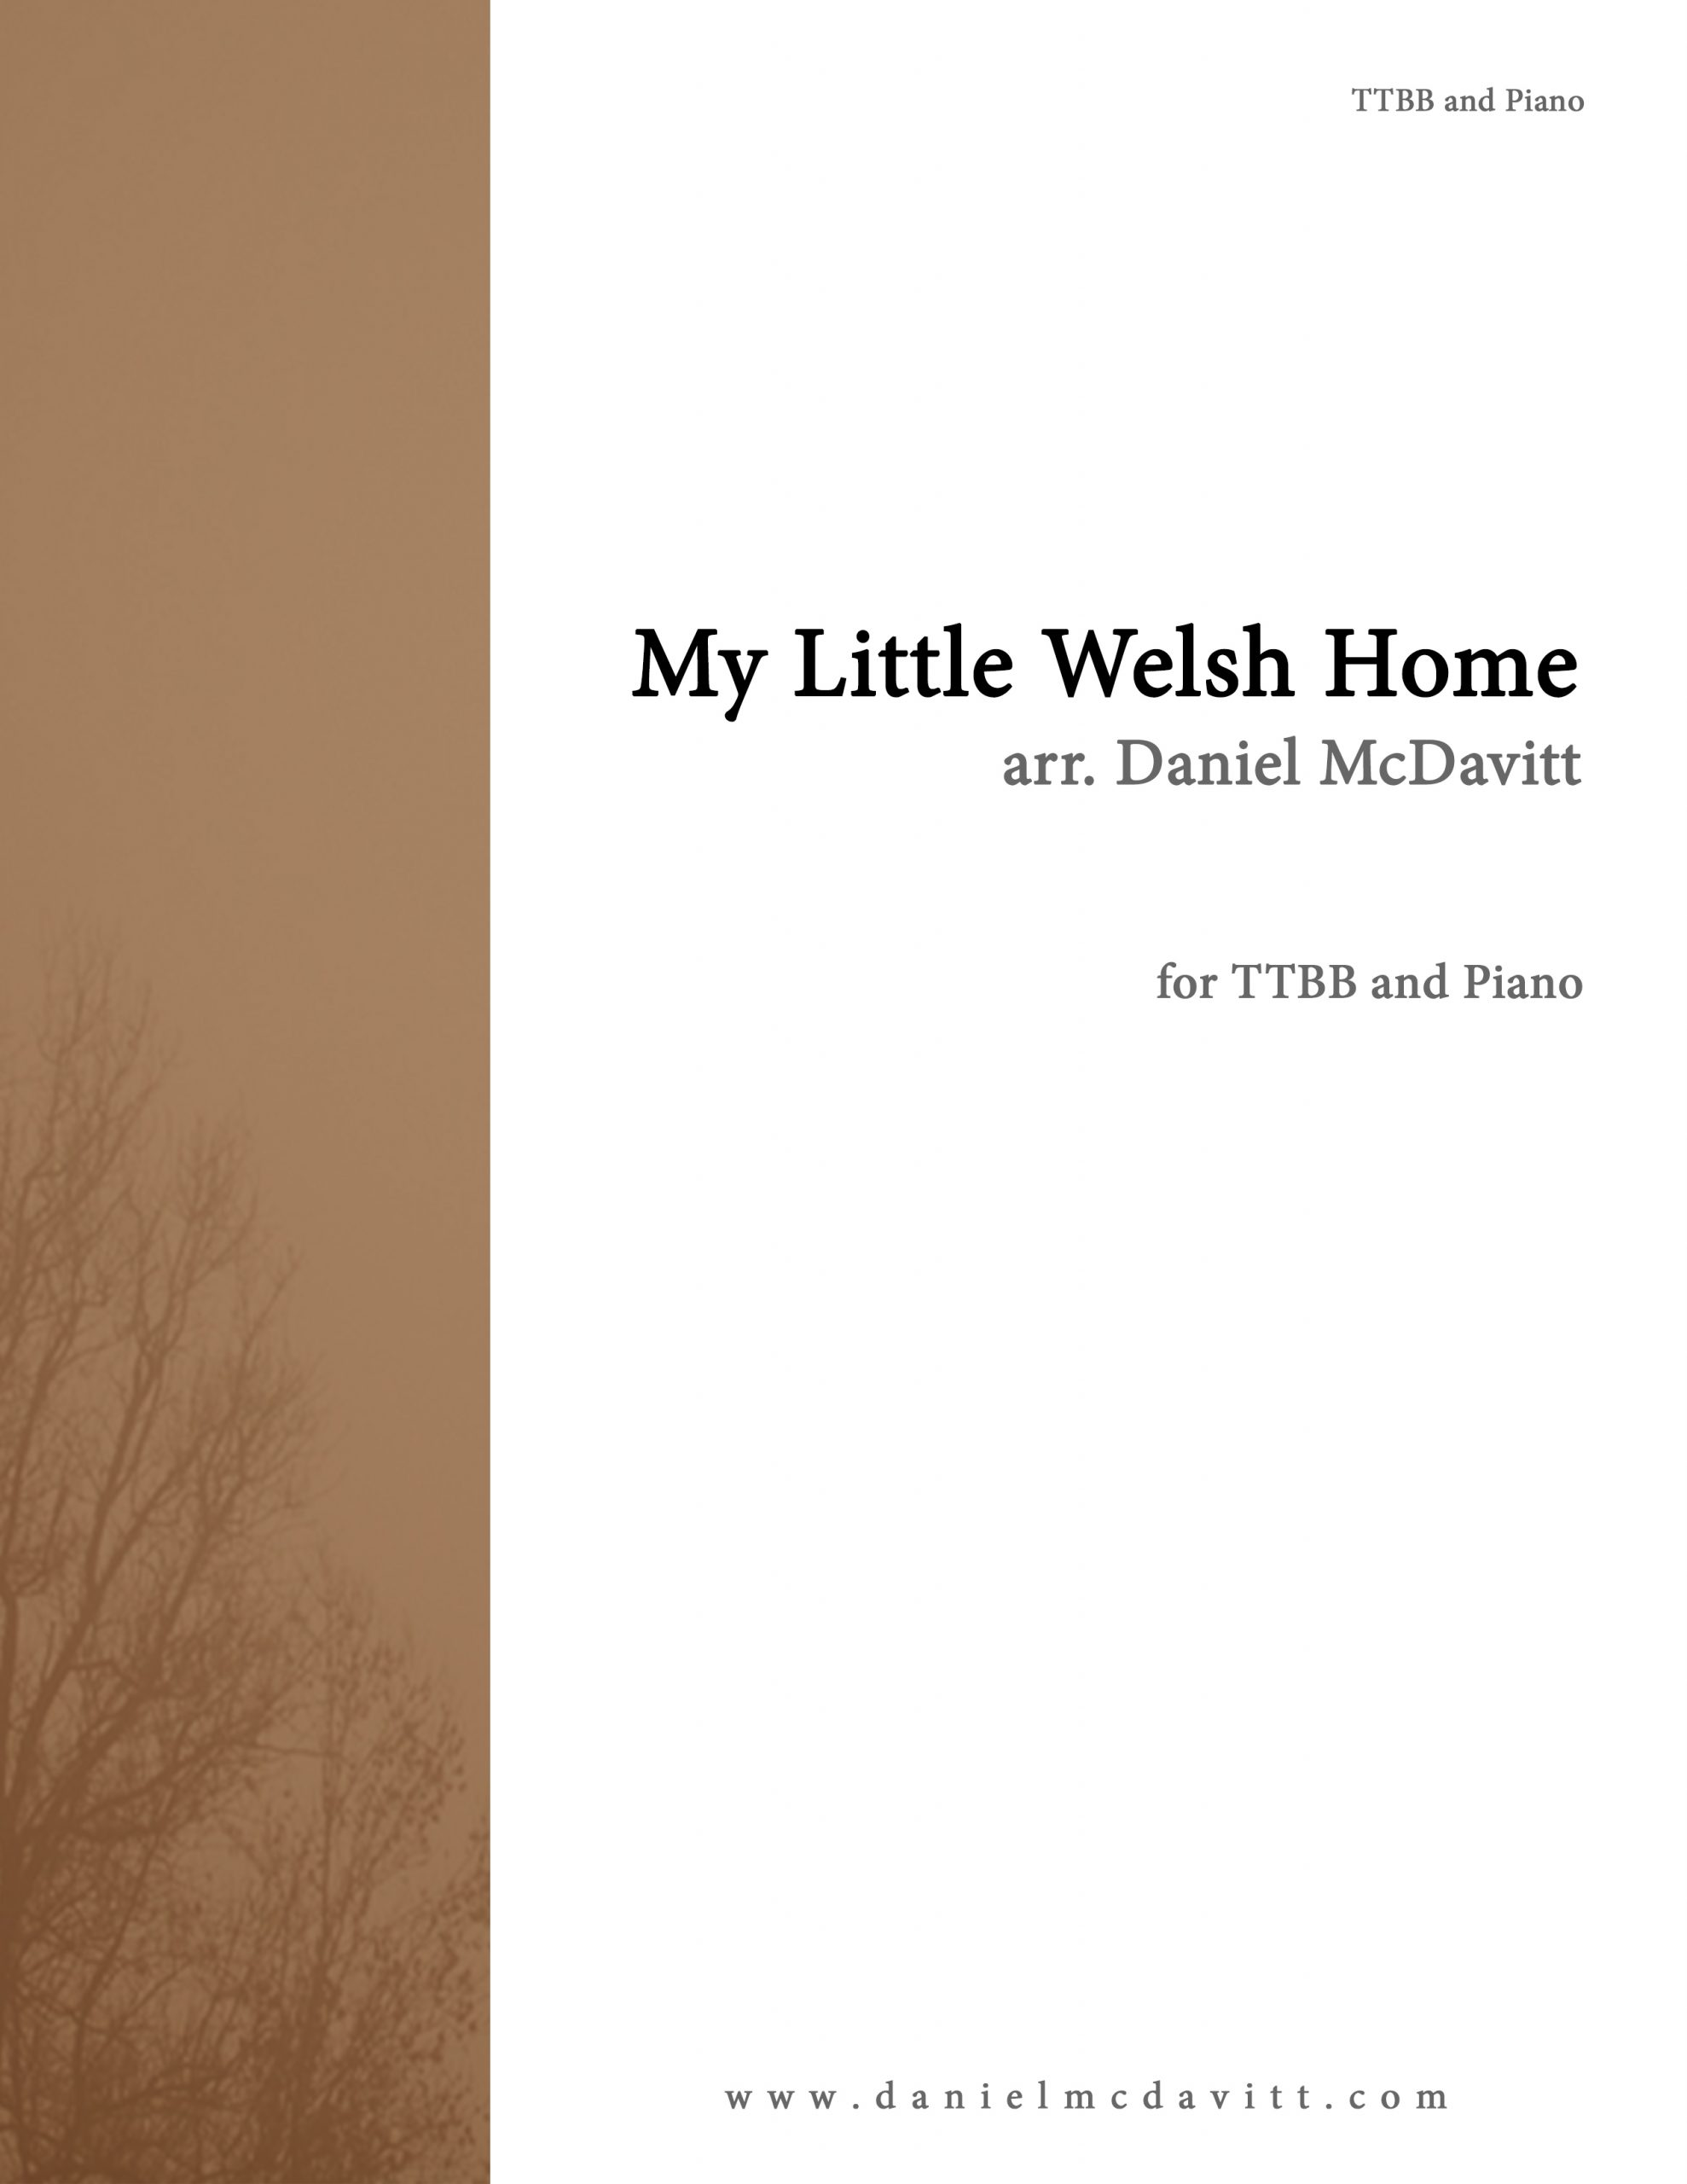 My Little Welsh Home Cover